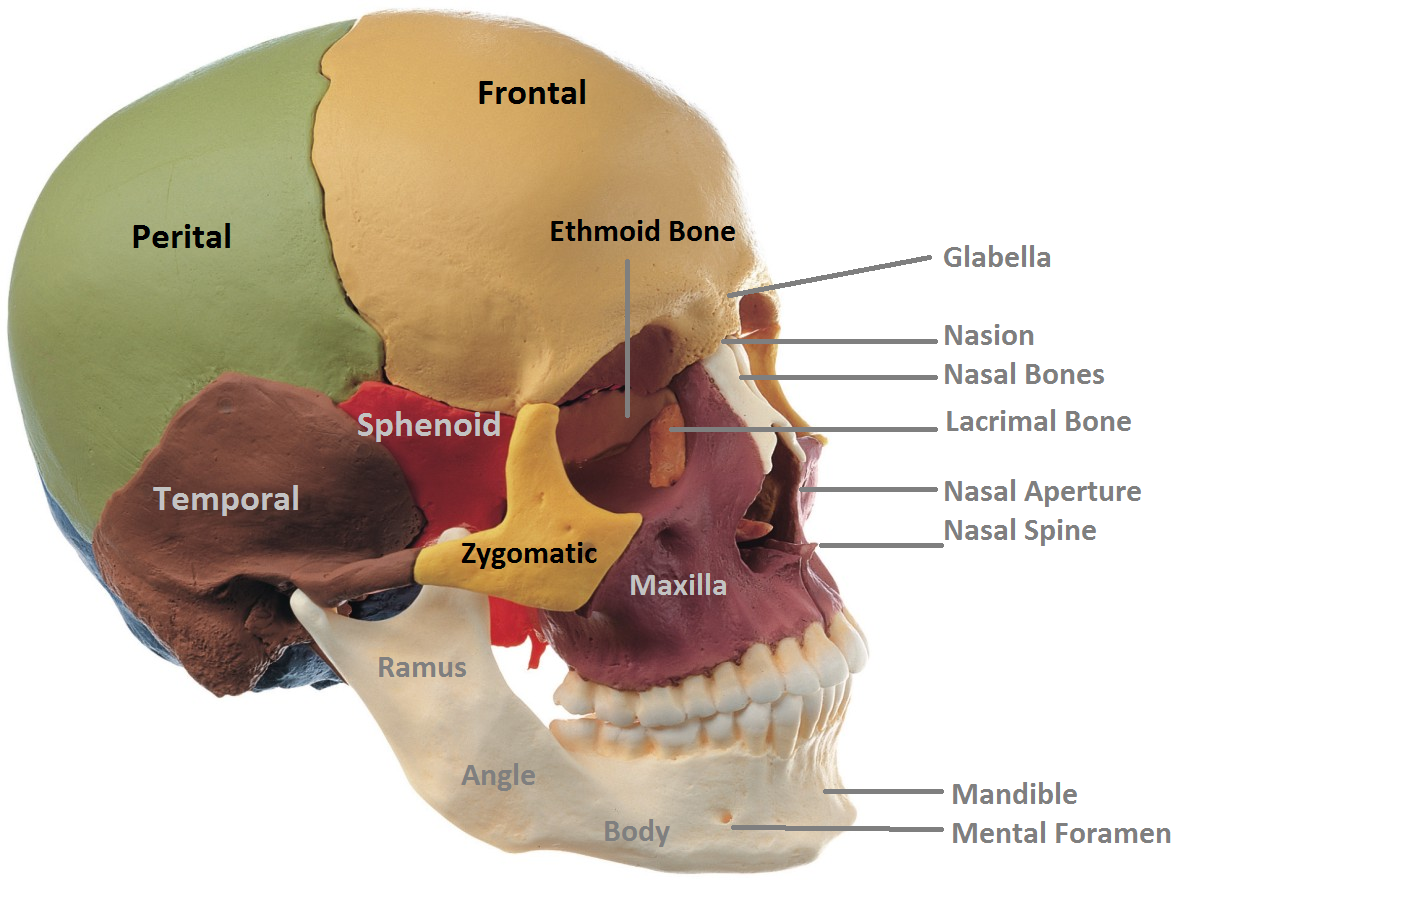 anatomy made easy : anterior view of skull, Sphenoid